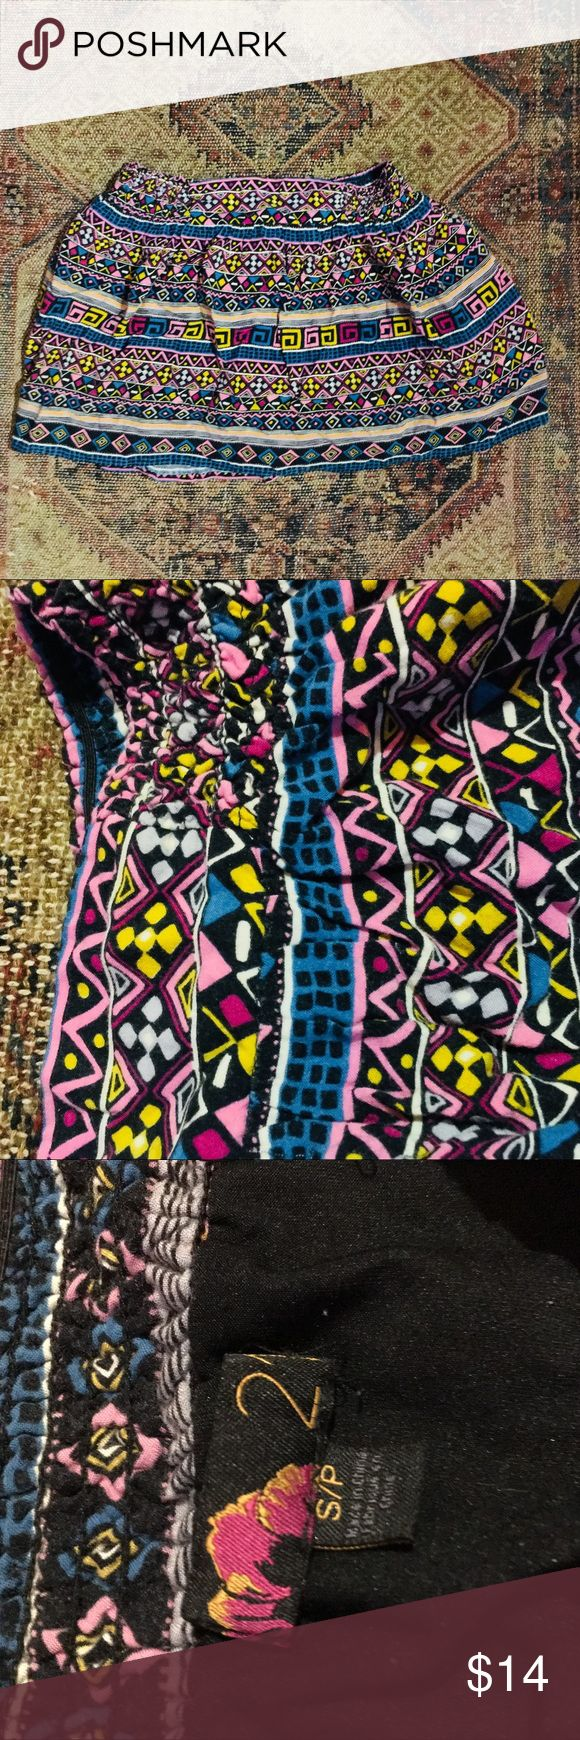 Tribal print skirt This comfortable and fun flashy skirt has been my favorite but it's time to clean the closet for the new so I must say goodbye. The waist is stretchy but it doesn't fall down. Tag says small fits small or medium. Charlotte Russe Skirts Mini